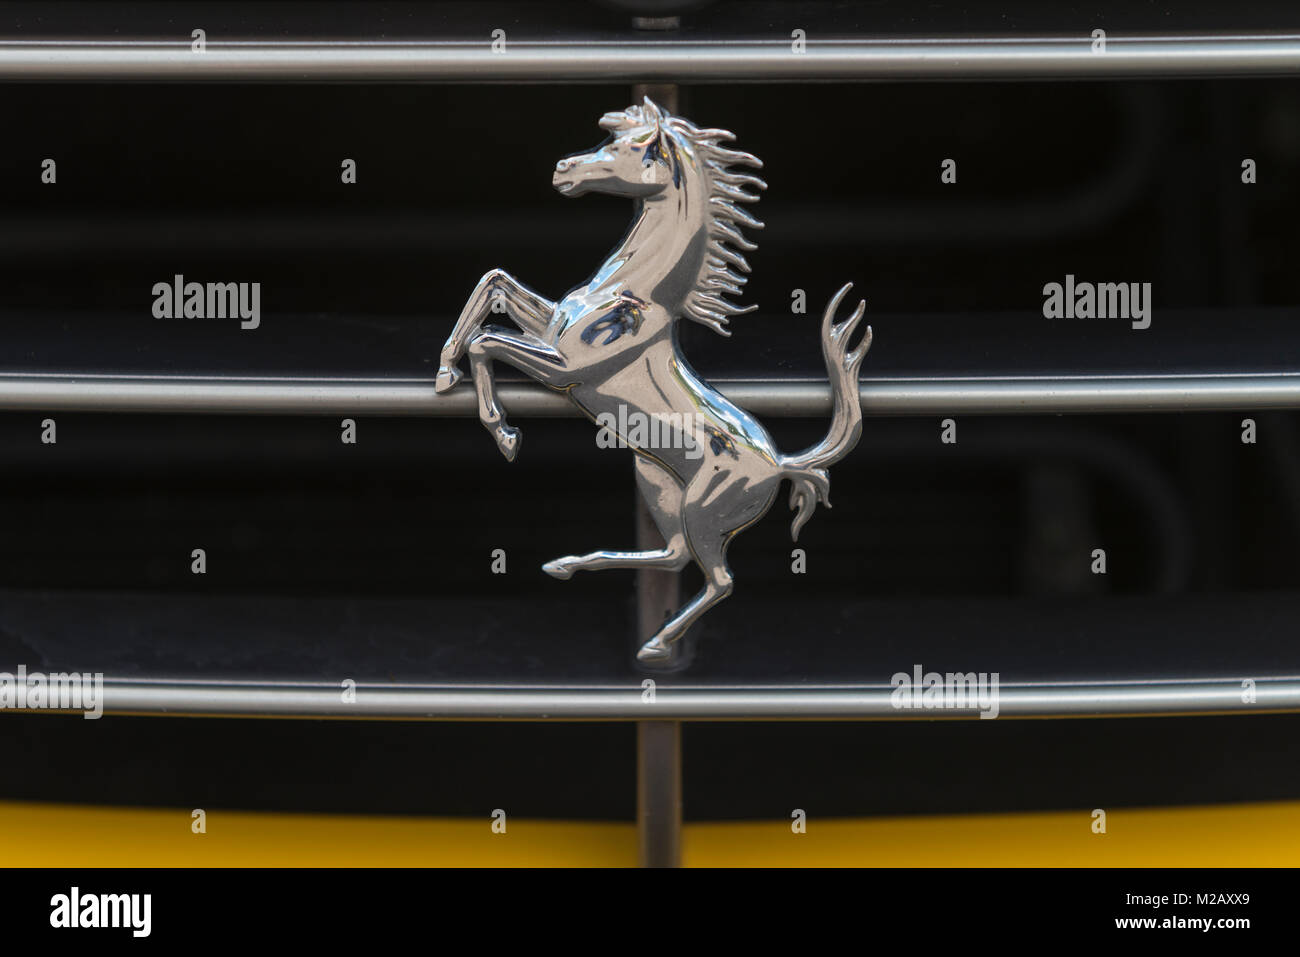 Prancing horse stock photos prancing horse stock images alamy the prancing horse badge on a yellow ferrari f1 california pictured at newport transport bridge biocorpaavc Gallery